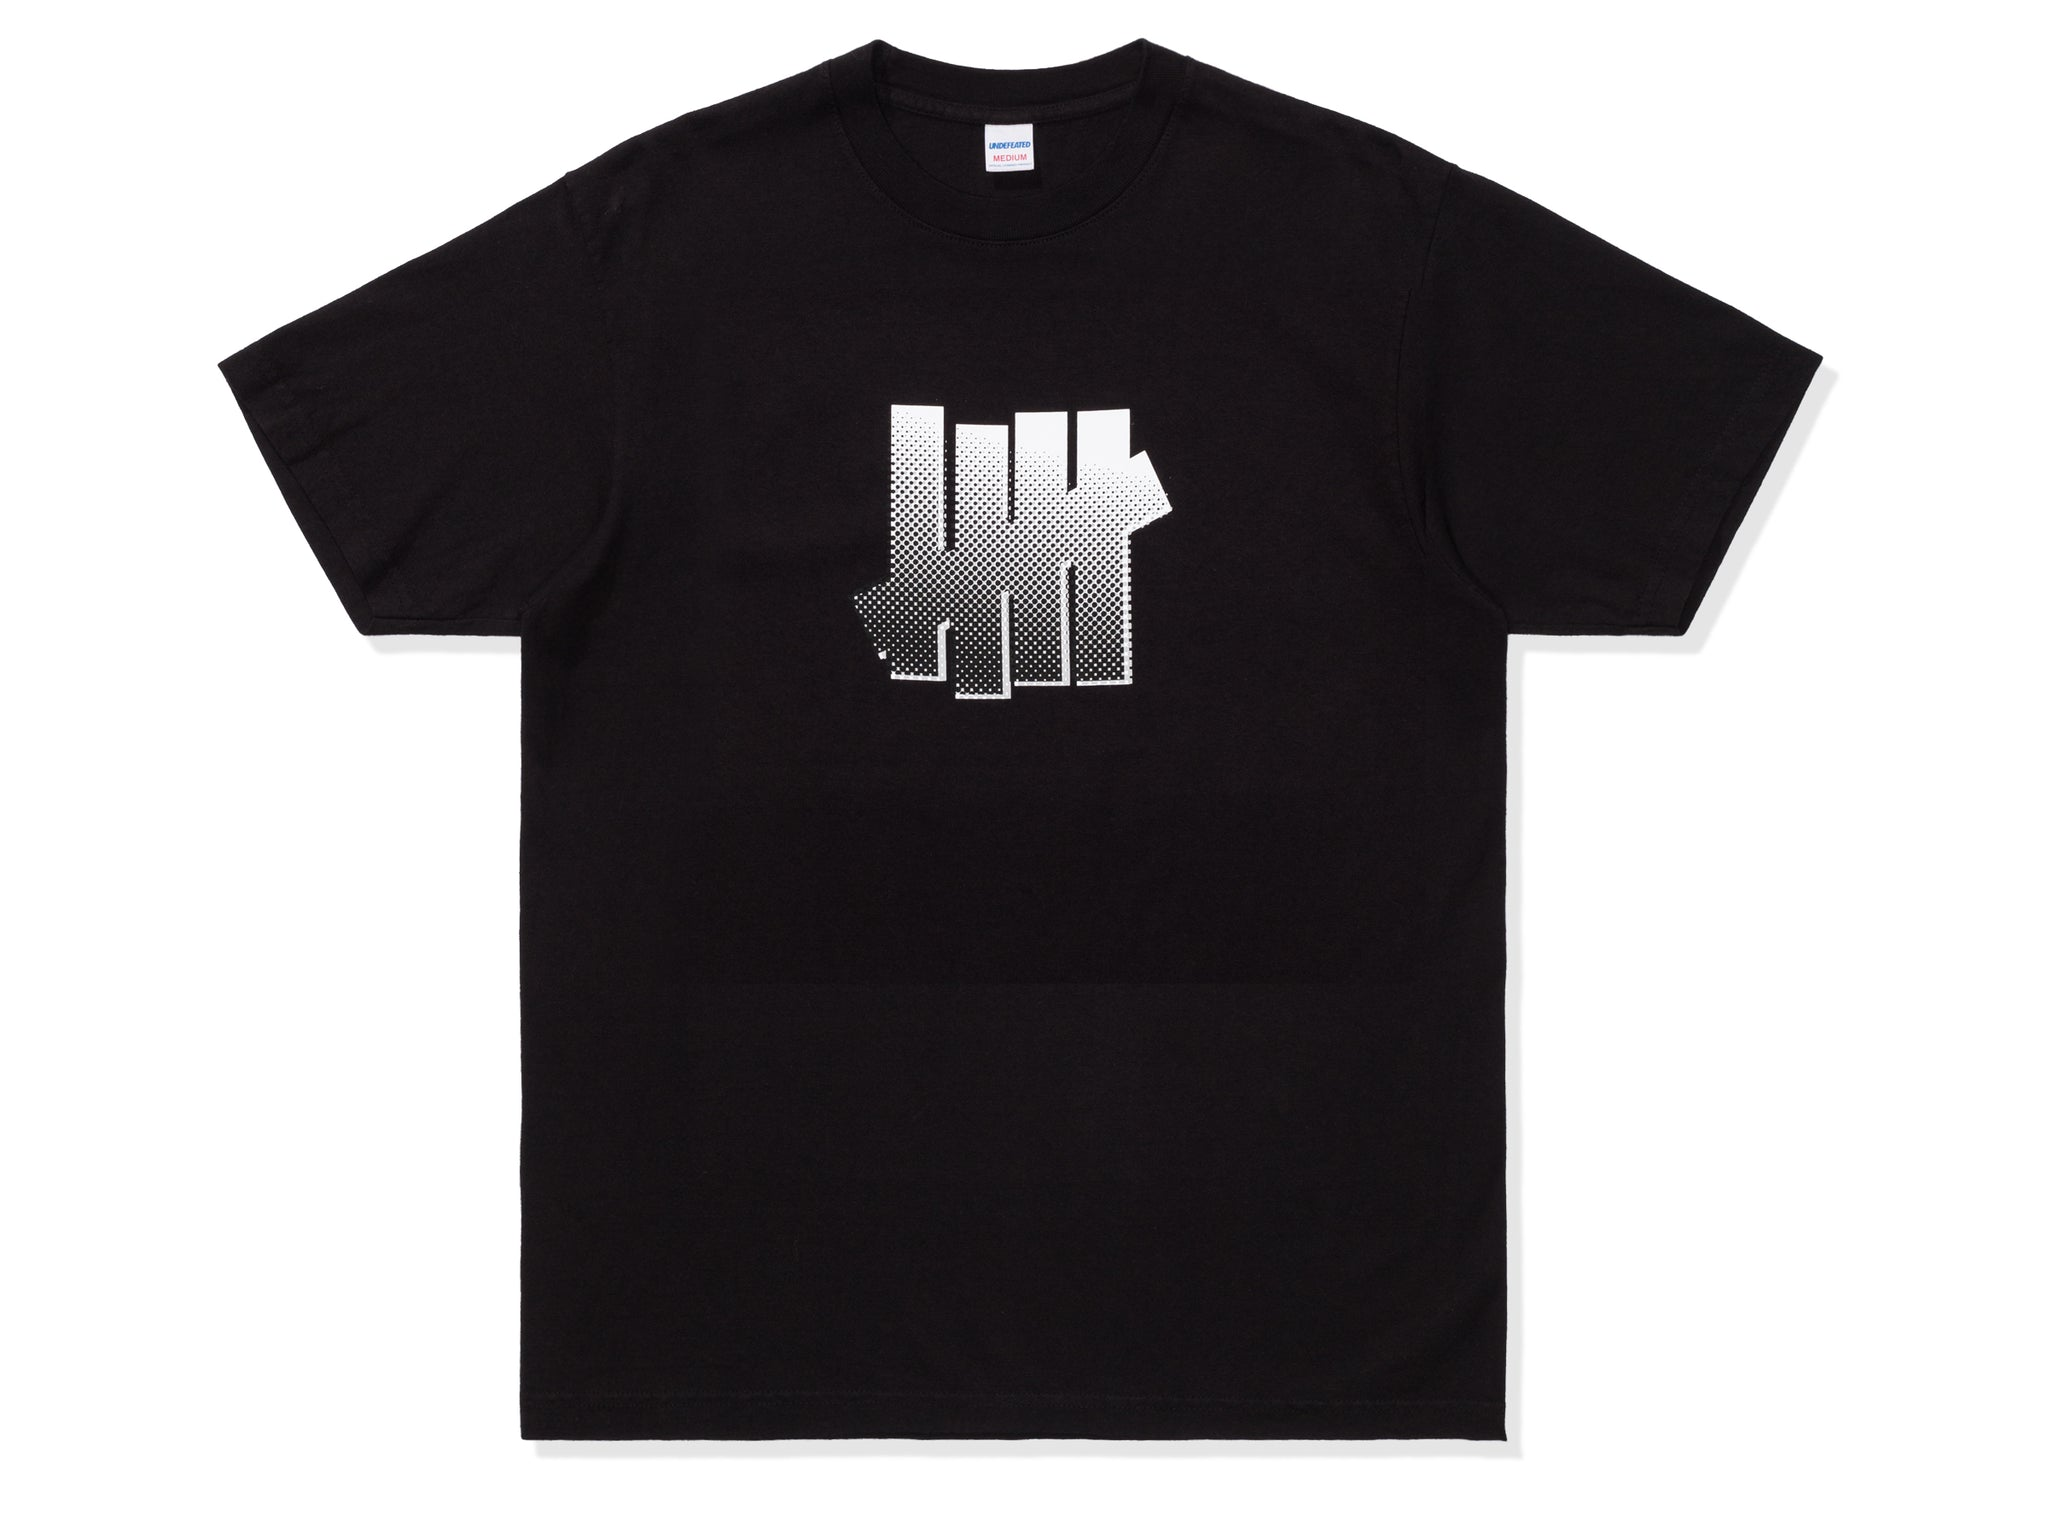 UNDEFEATED HALF-TONED ICON TEE